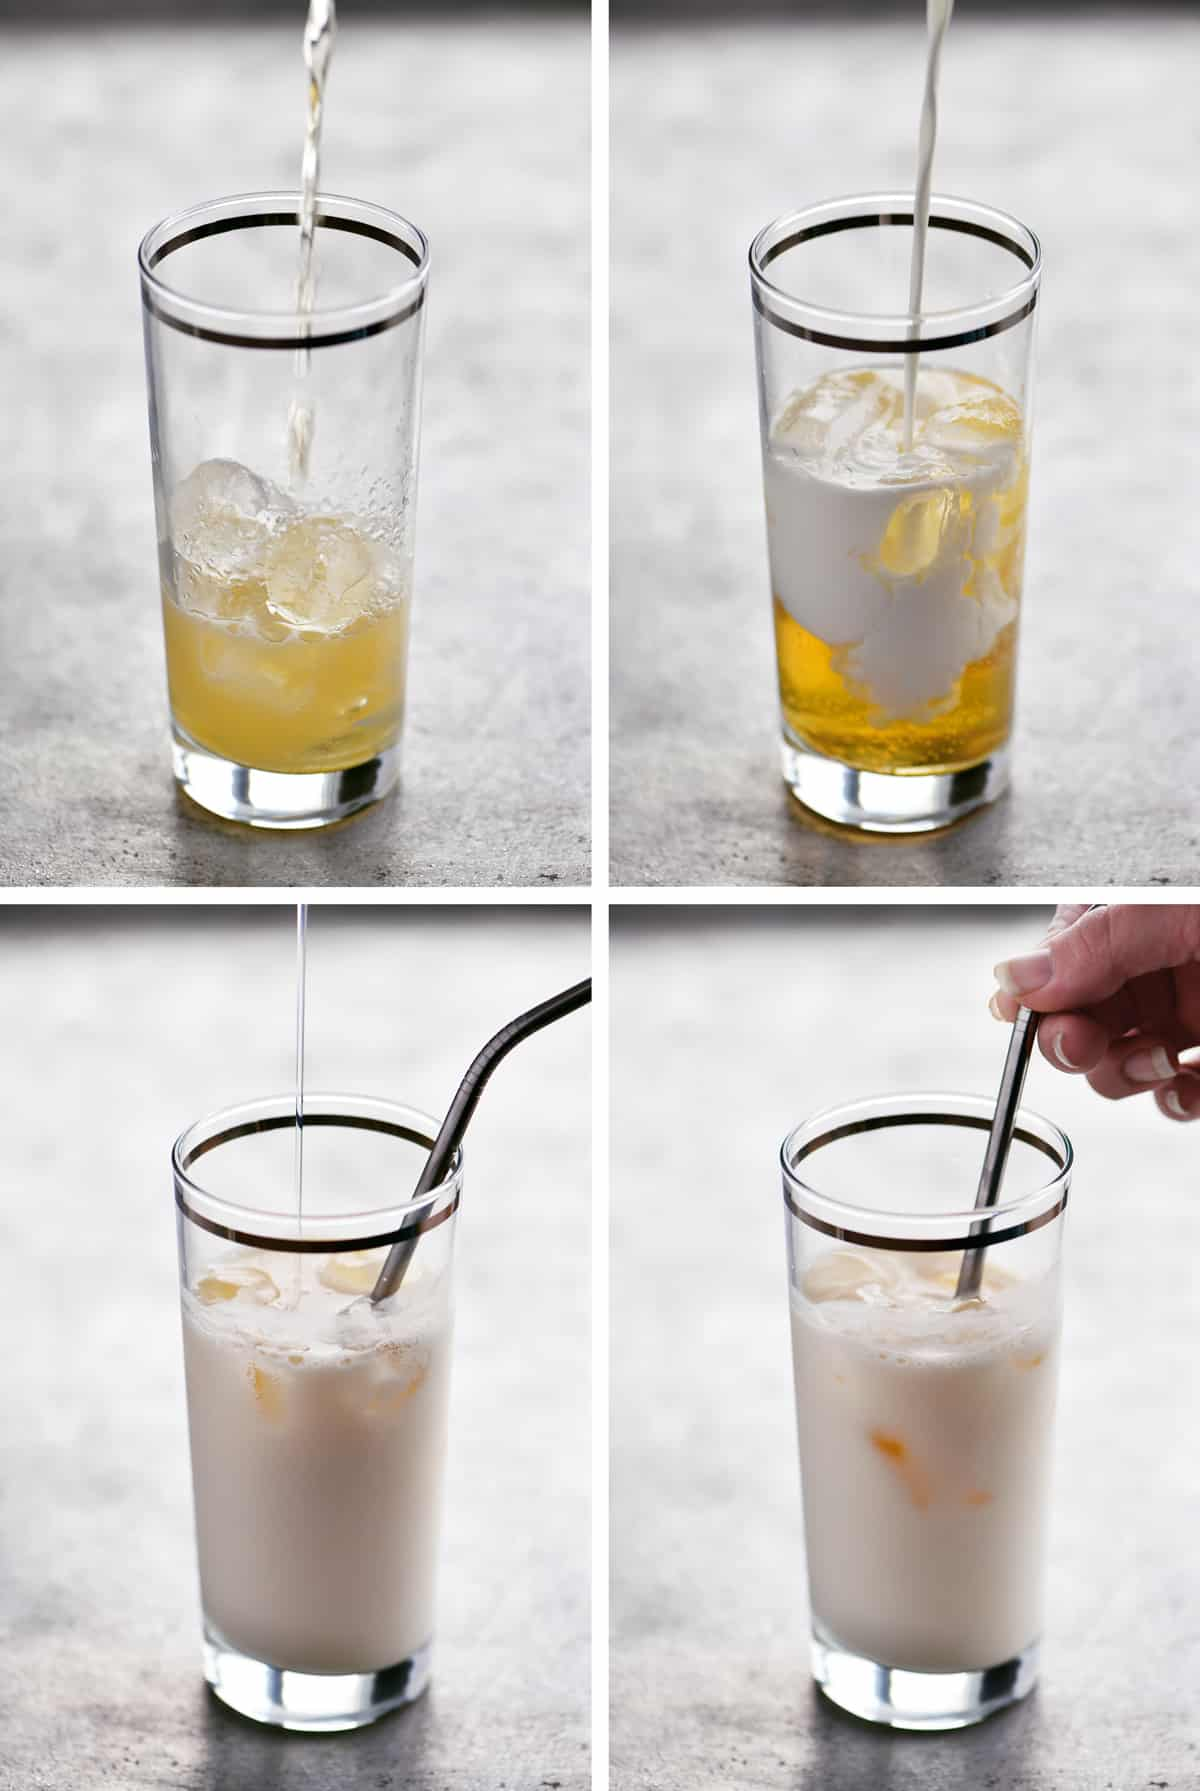 Steps to make Pina Colada beverage